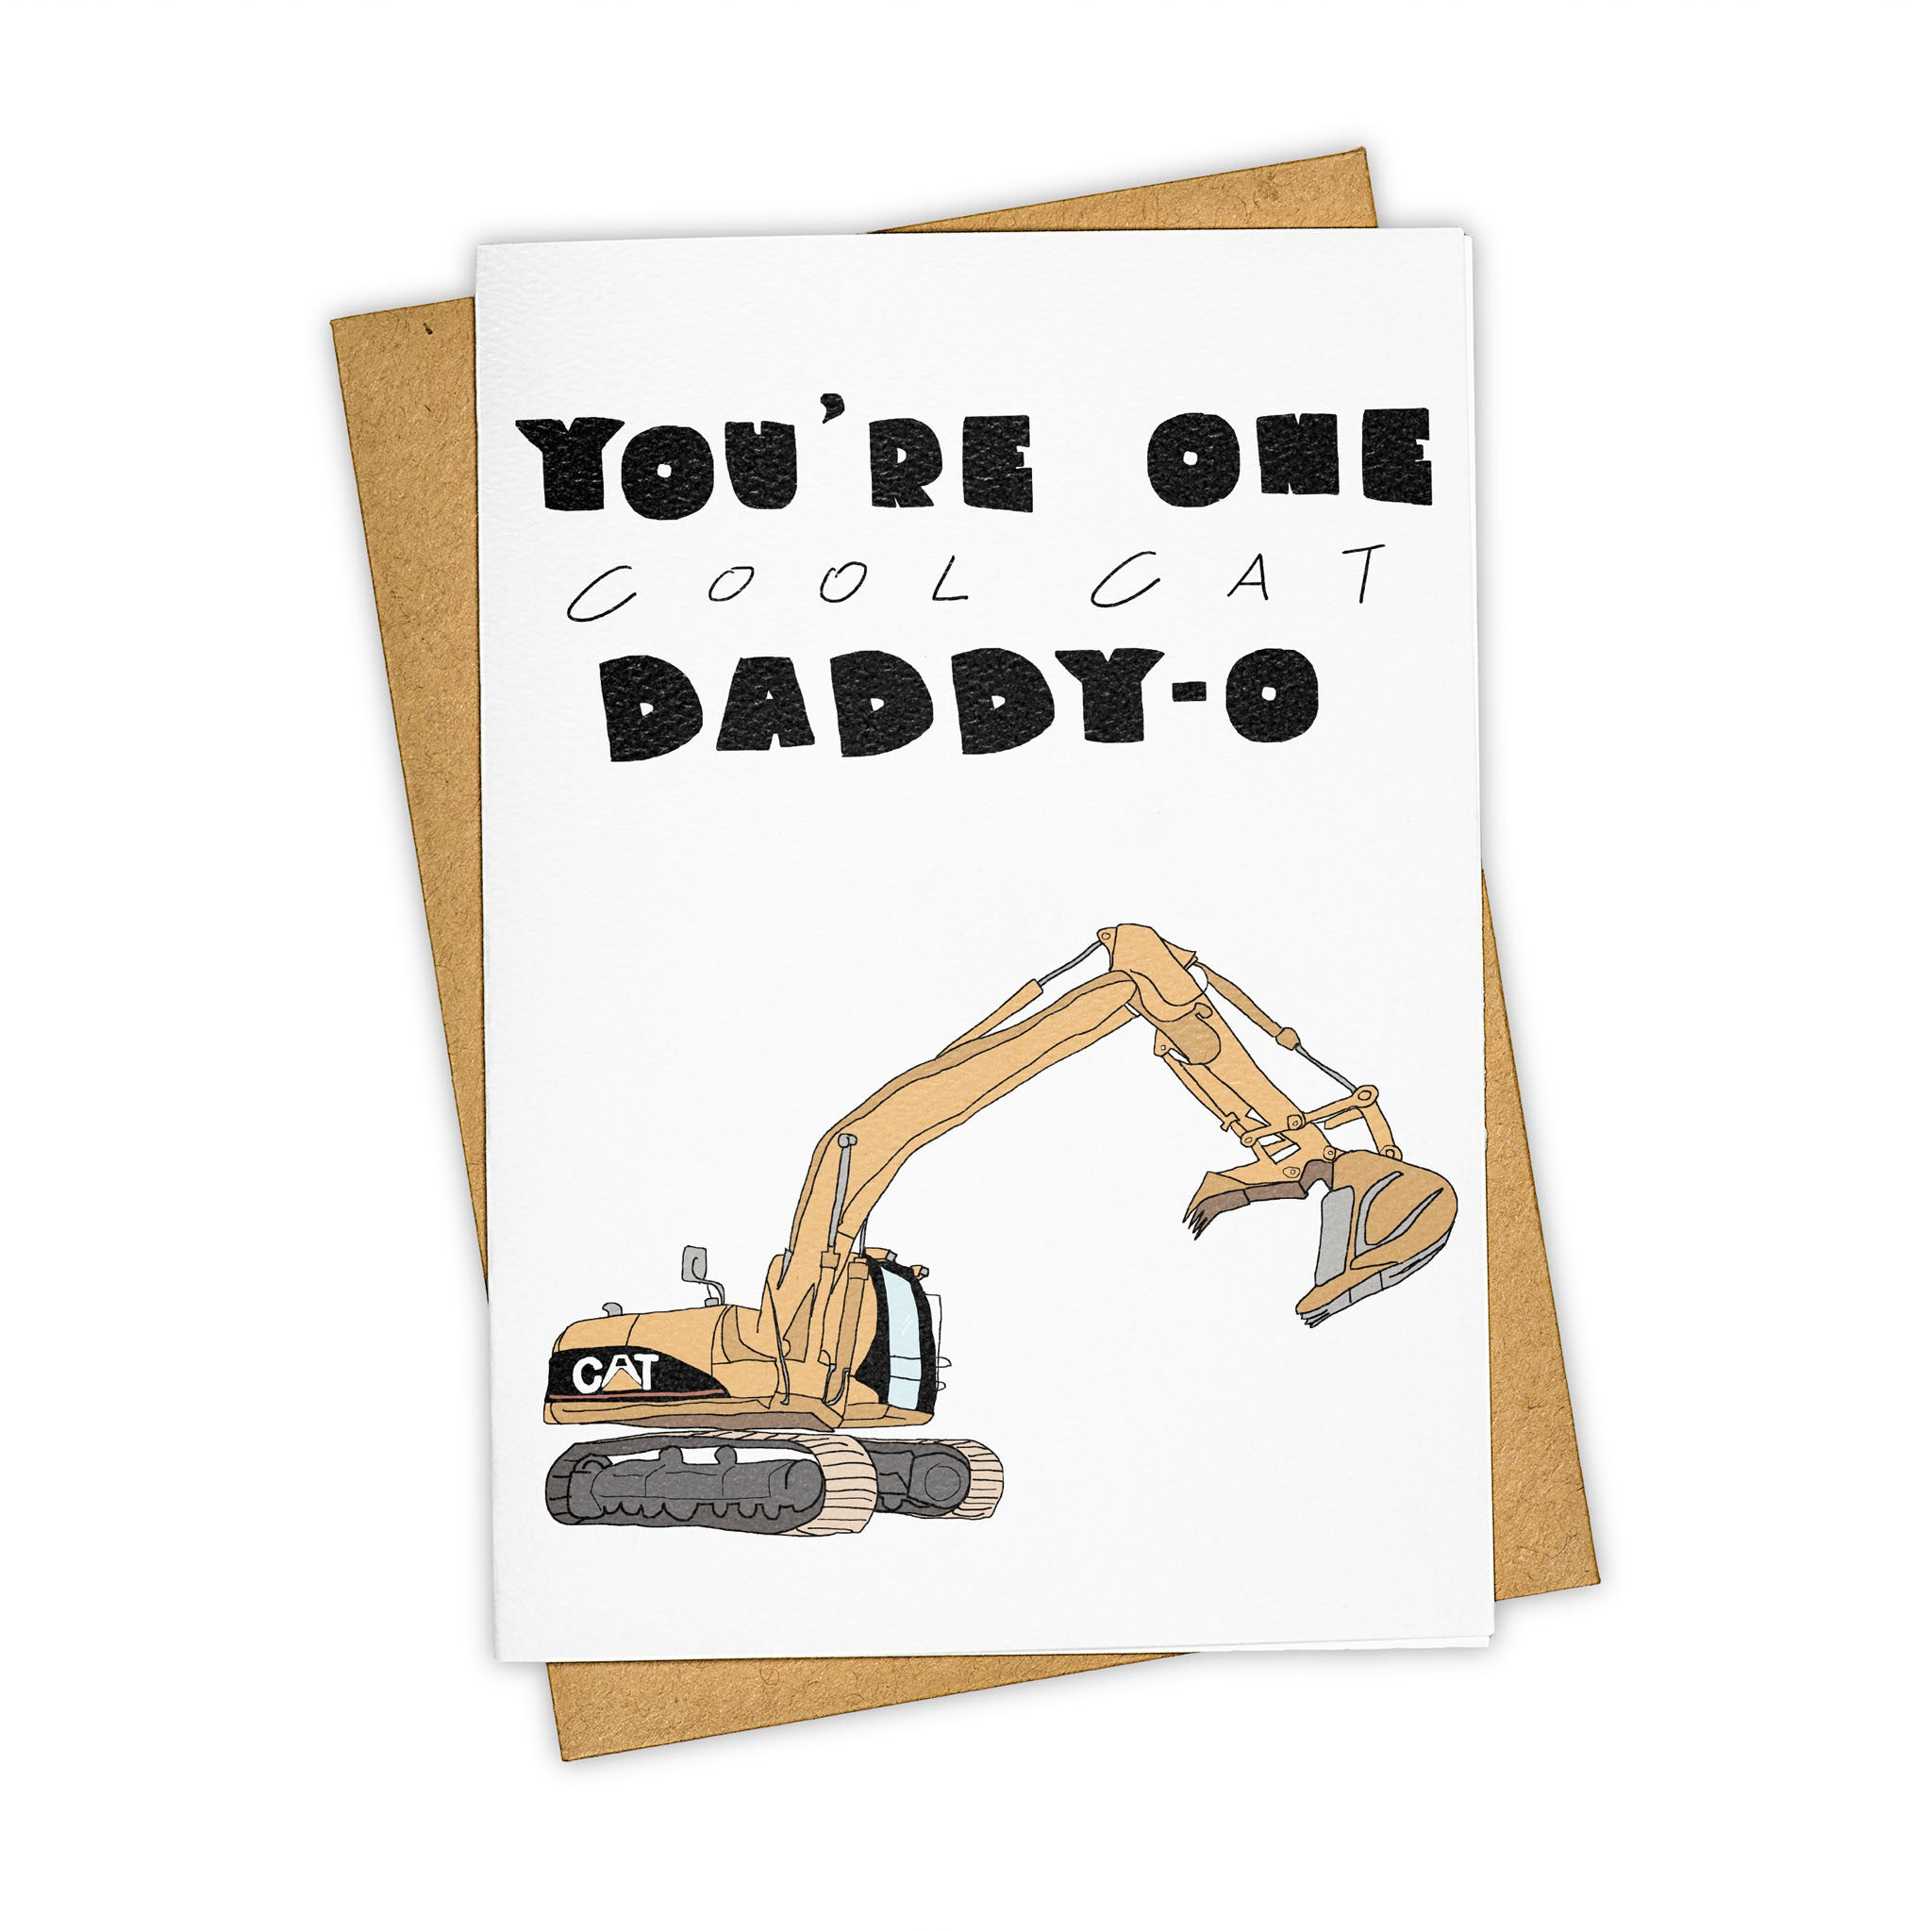 TAY HAM Father's Day Catepillar Cat Backhoe Greeting Card